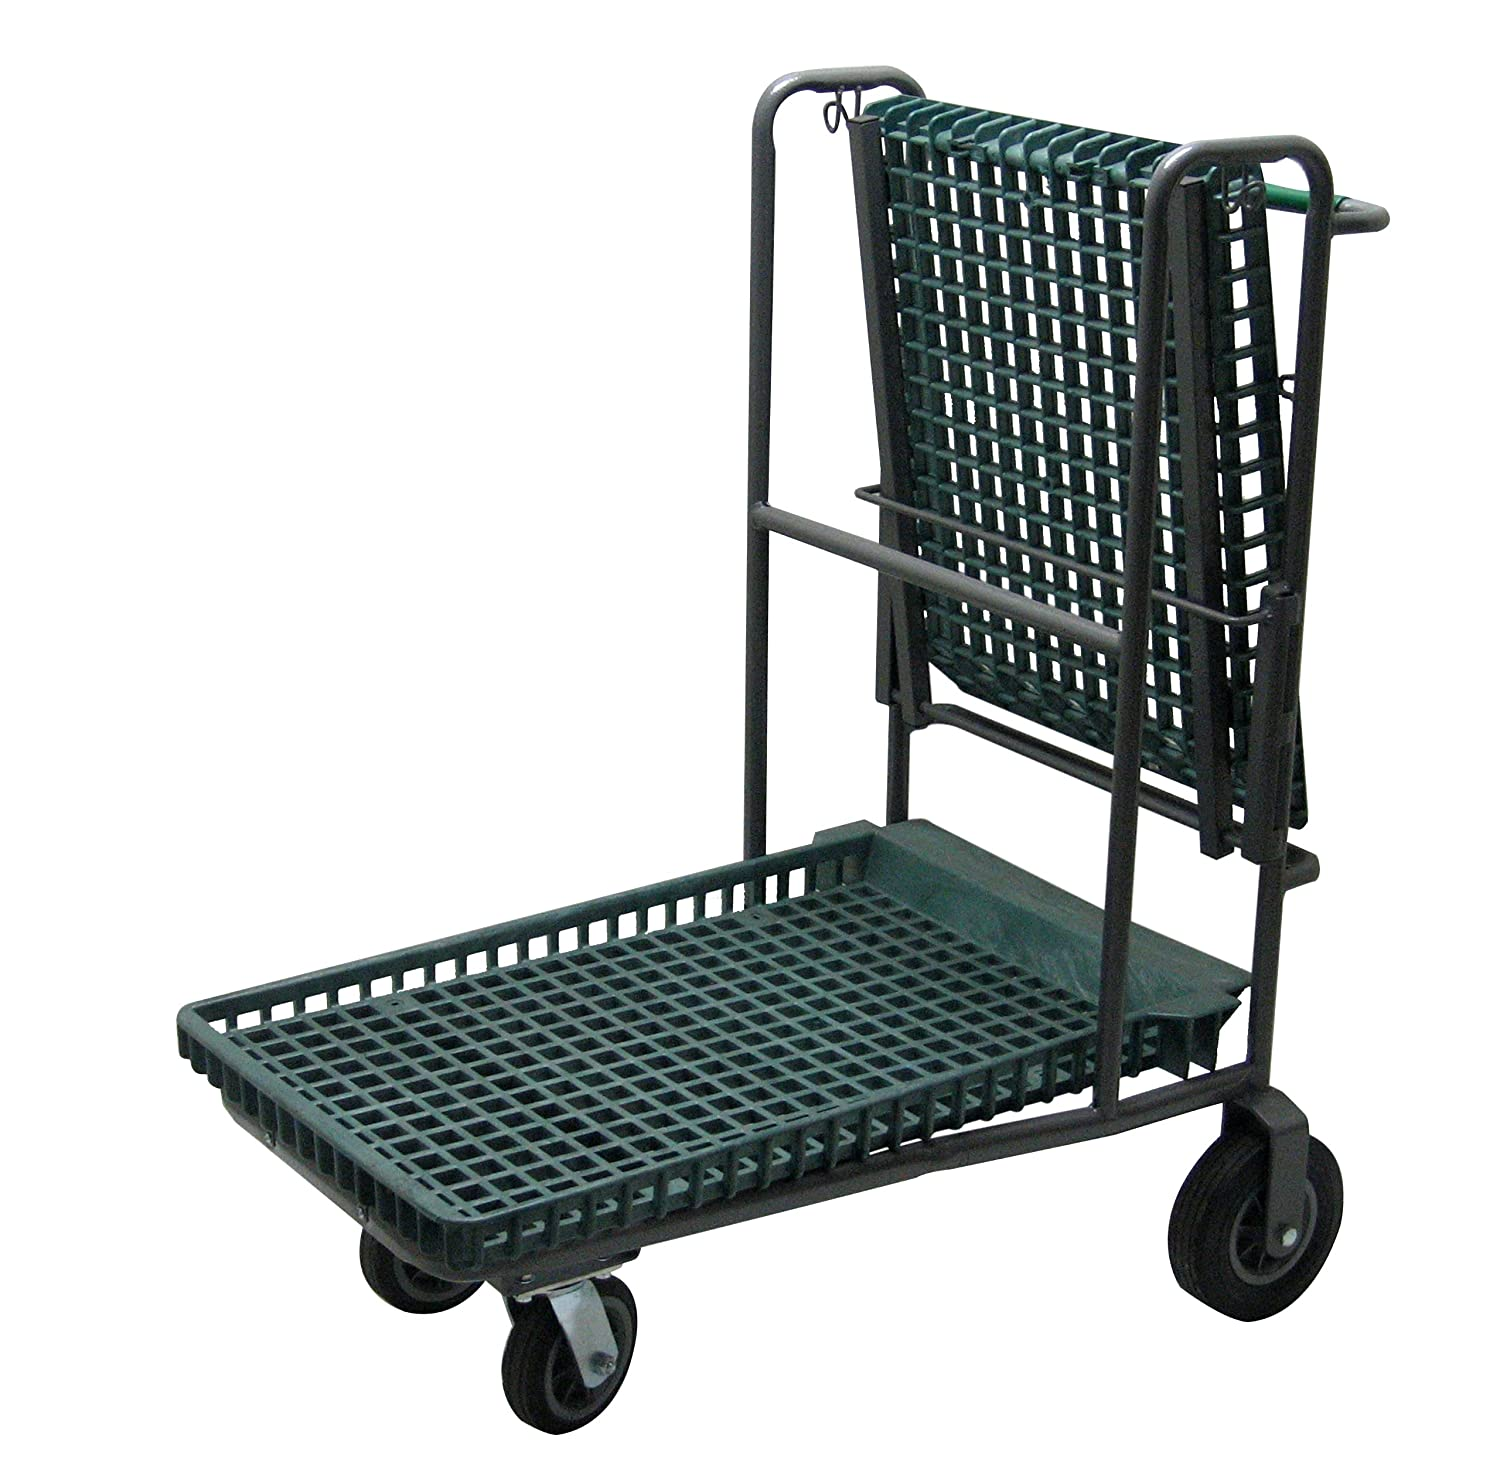 R. W. ROGERS RWR-PRE-881G KT Nesting Flip-Top Garden Center Cart with Semi-Pneumatic Wheels, Grey Green